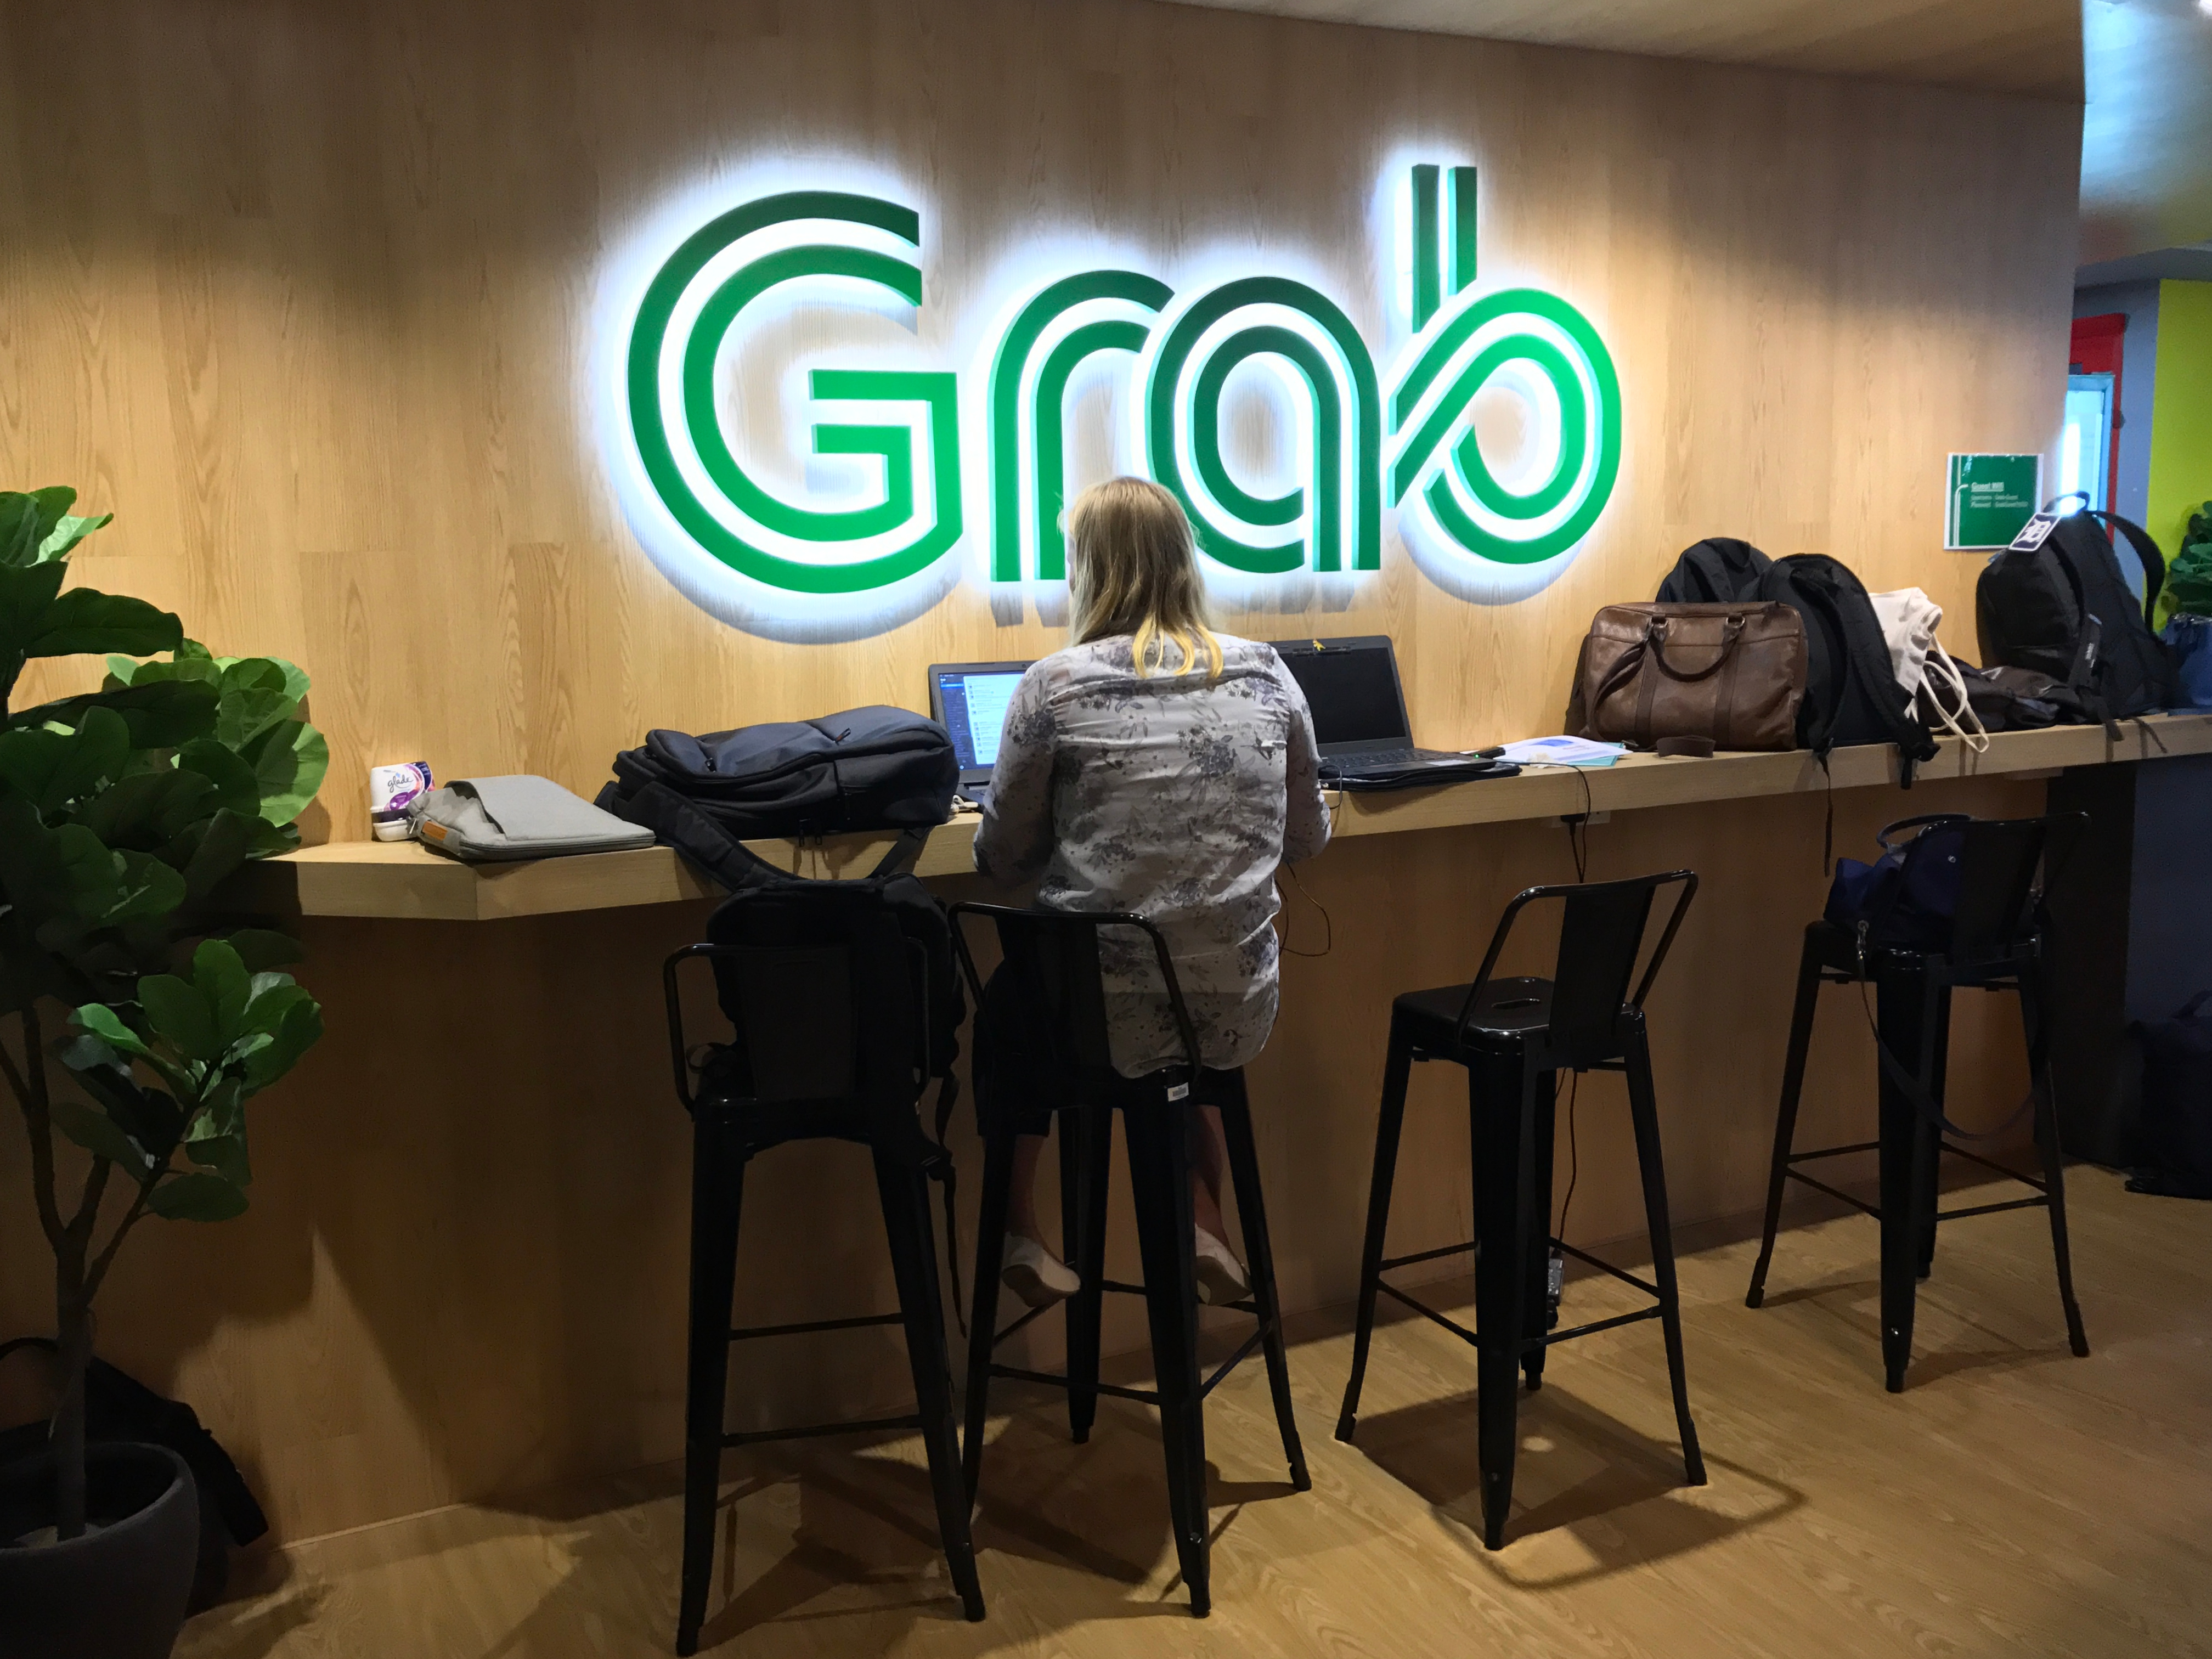 Grab, Uber's rival in Southeast Asia, pulls in strategic investment from Hyundai